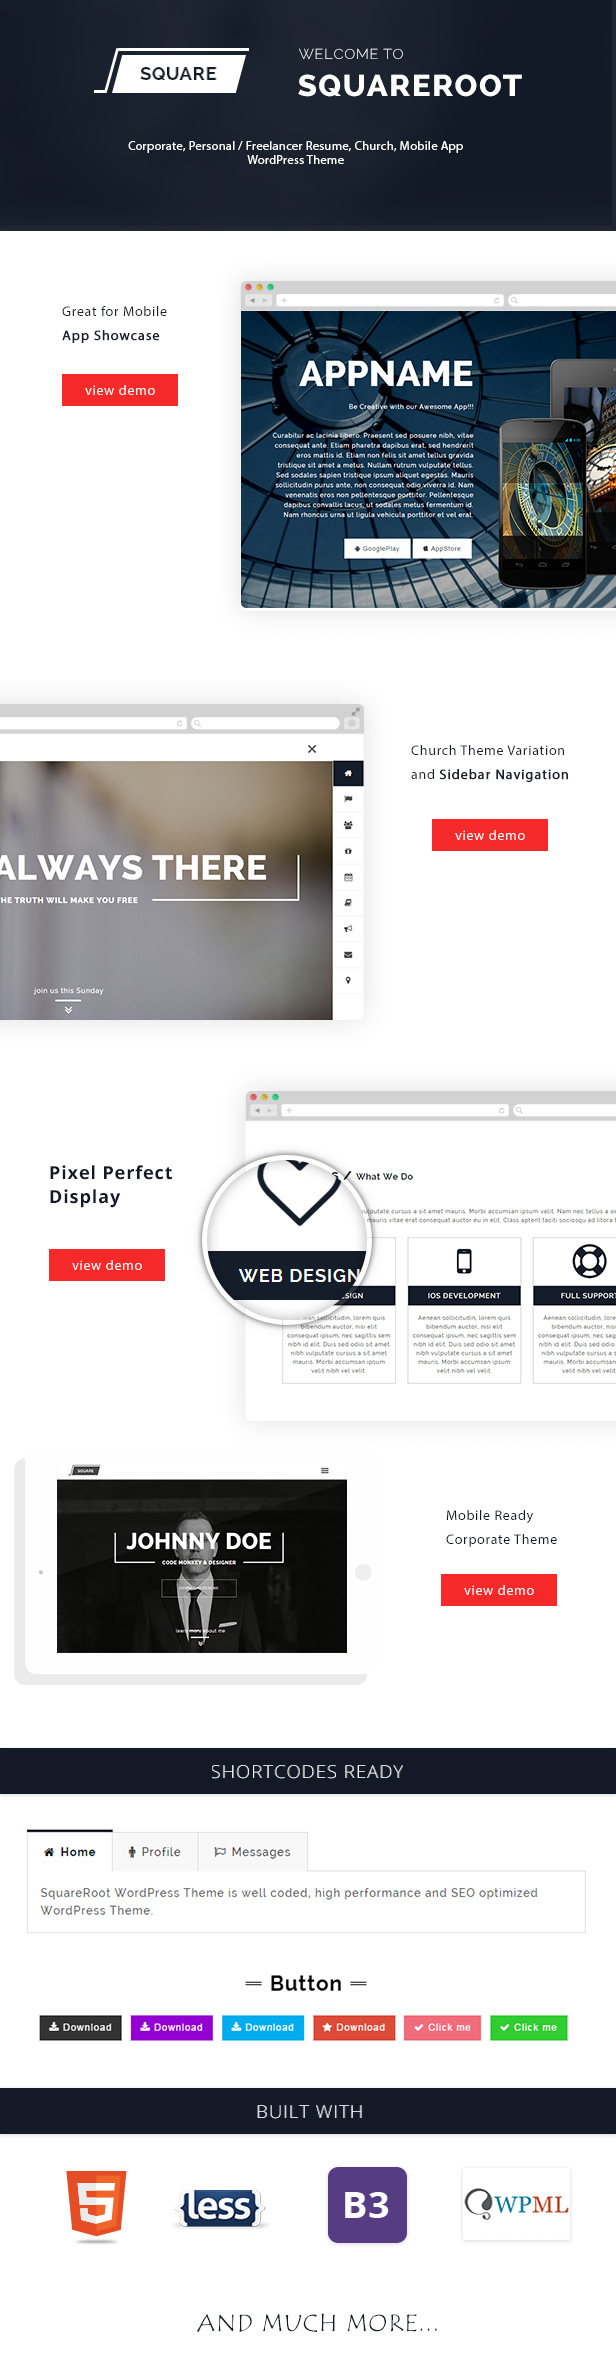 Onepage WordPress Resume Theme for vCard, CV, Personal Resume